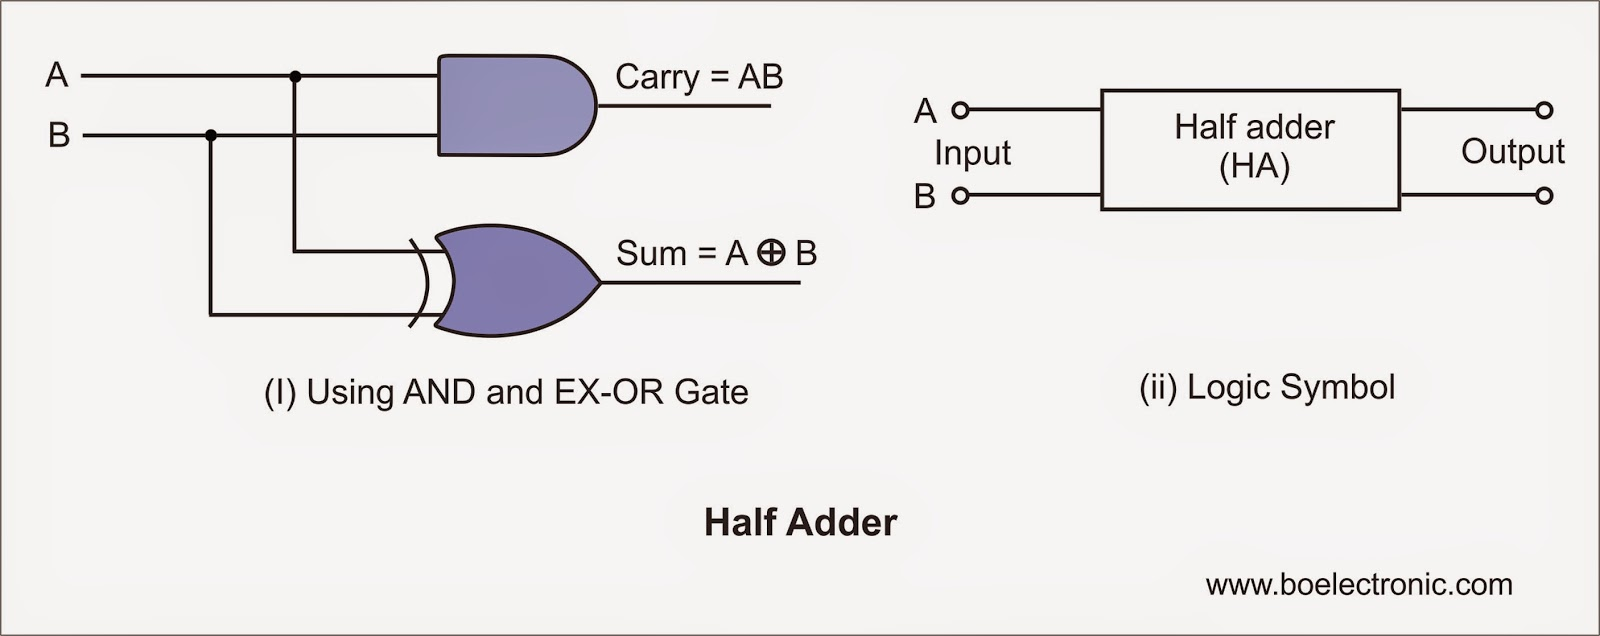 Full Adder Nand Gates Logic Diagram Half Circuit Using Only 1600x636